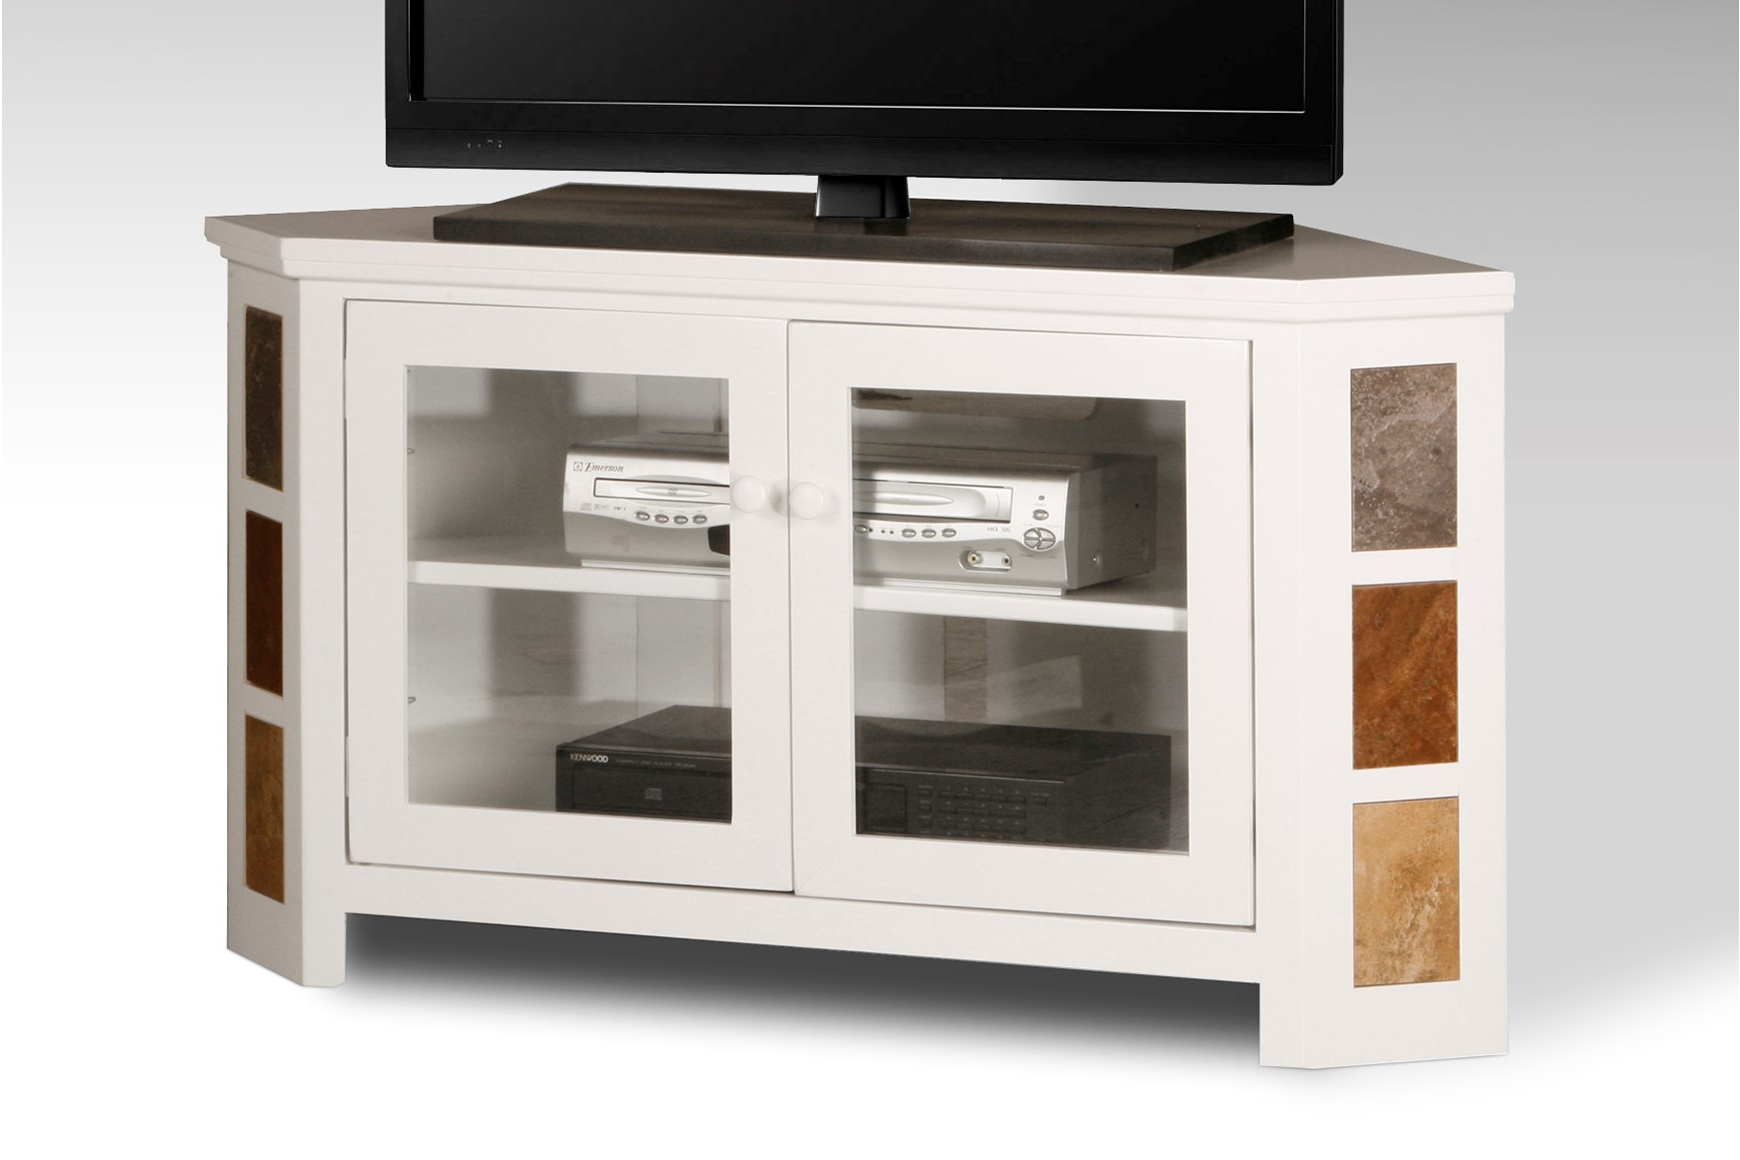 2018 White Corner Tv Cabinets Throughout Corner Rustic Tv Stand Plans White With Barn Doors Small Canada (Gallery 18 of 20)